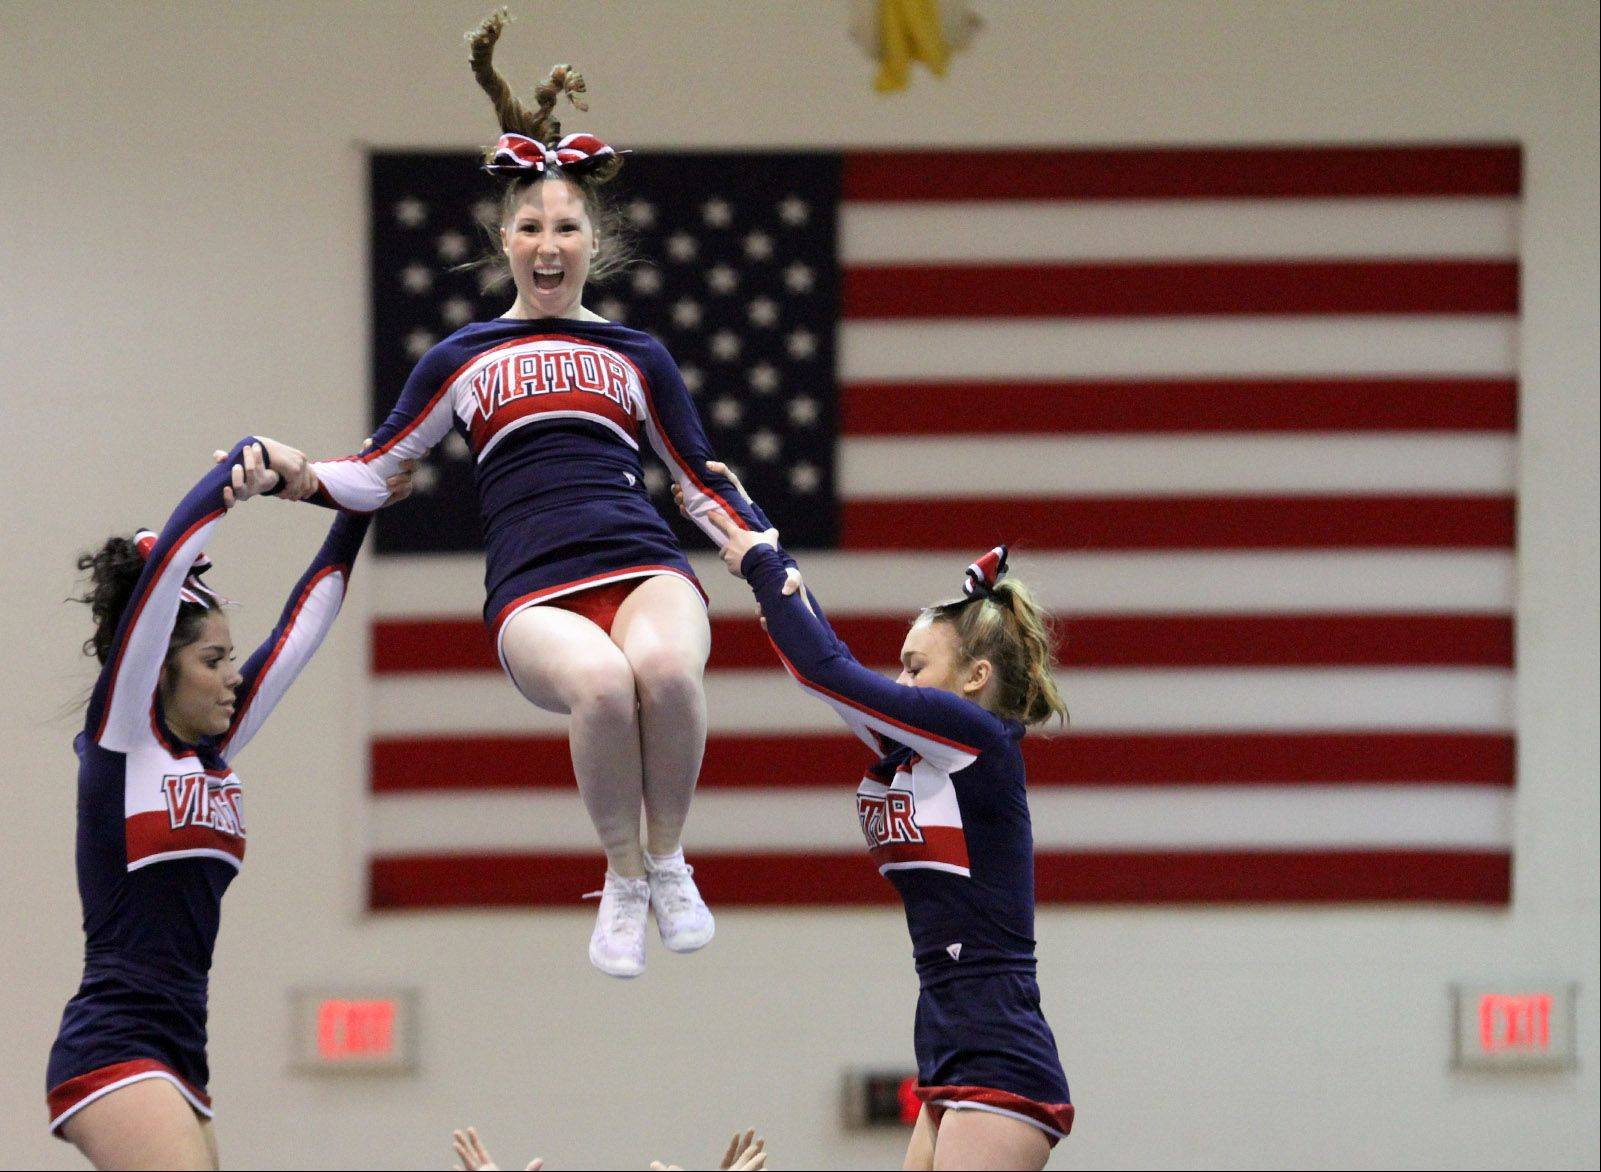 The St. Viator High School cheerleading team performed at the IHSA competitive cheerleading sectionals held Saturday at Rolling Meadows High School.